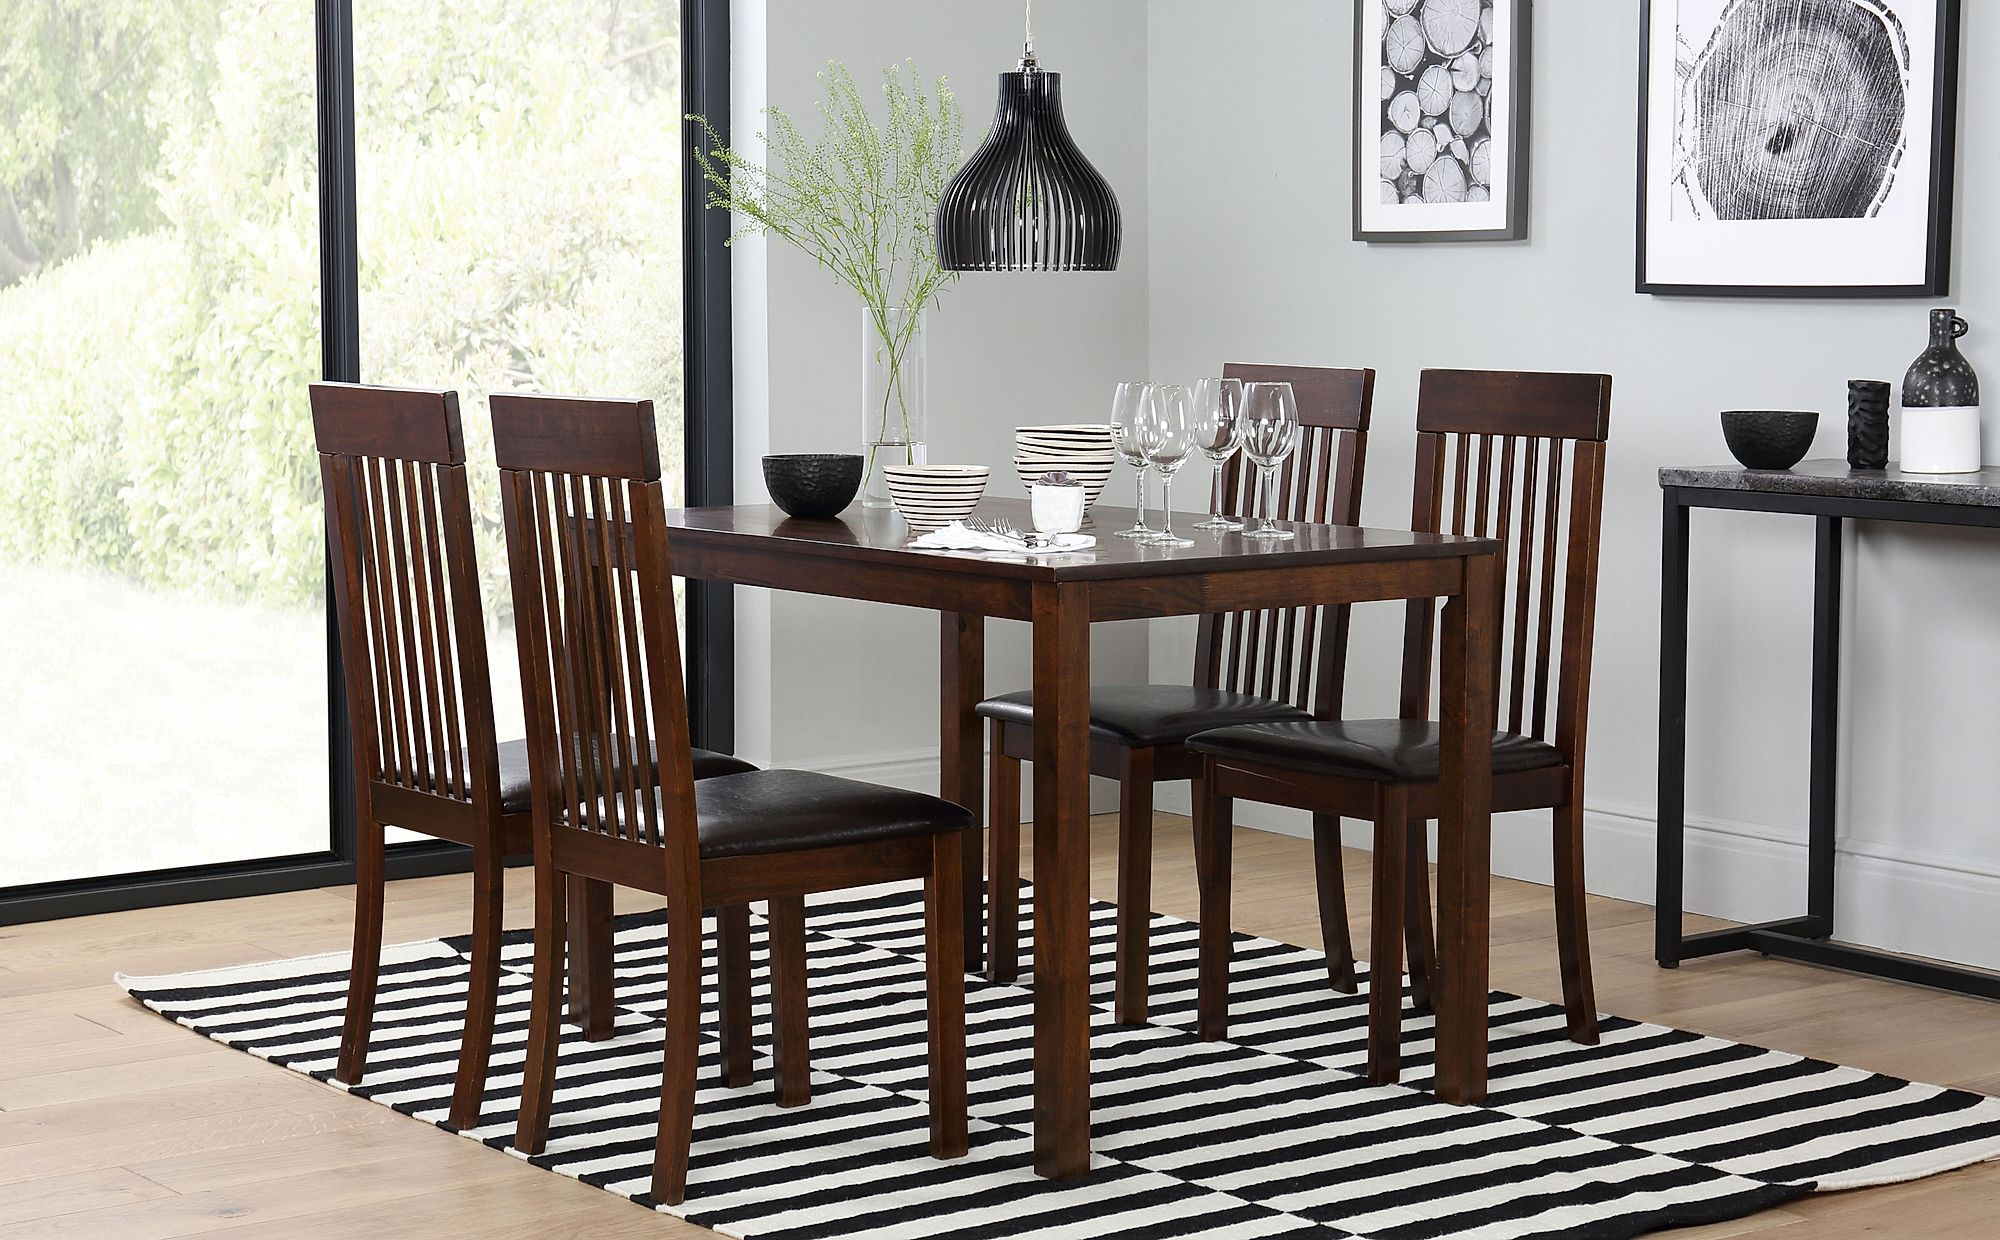 Milton Dark Wood Dining Table With 4 Oxford Chairs Brown Seat Pad